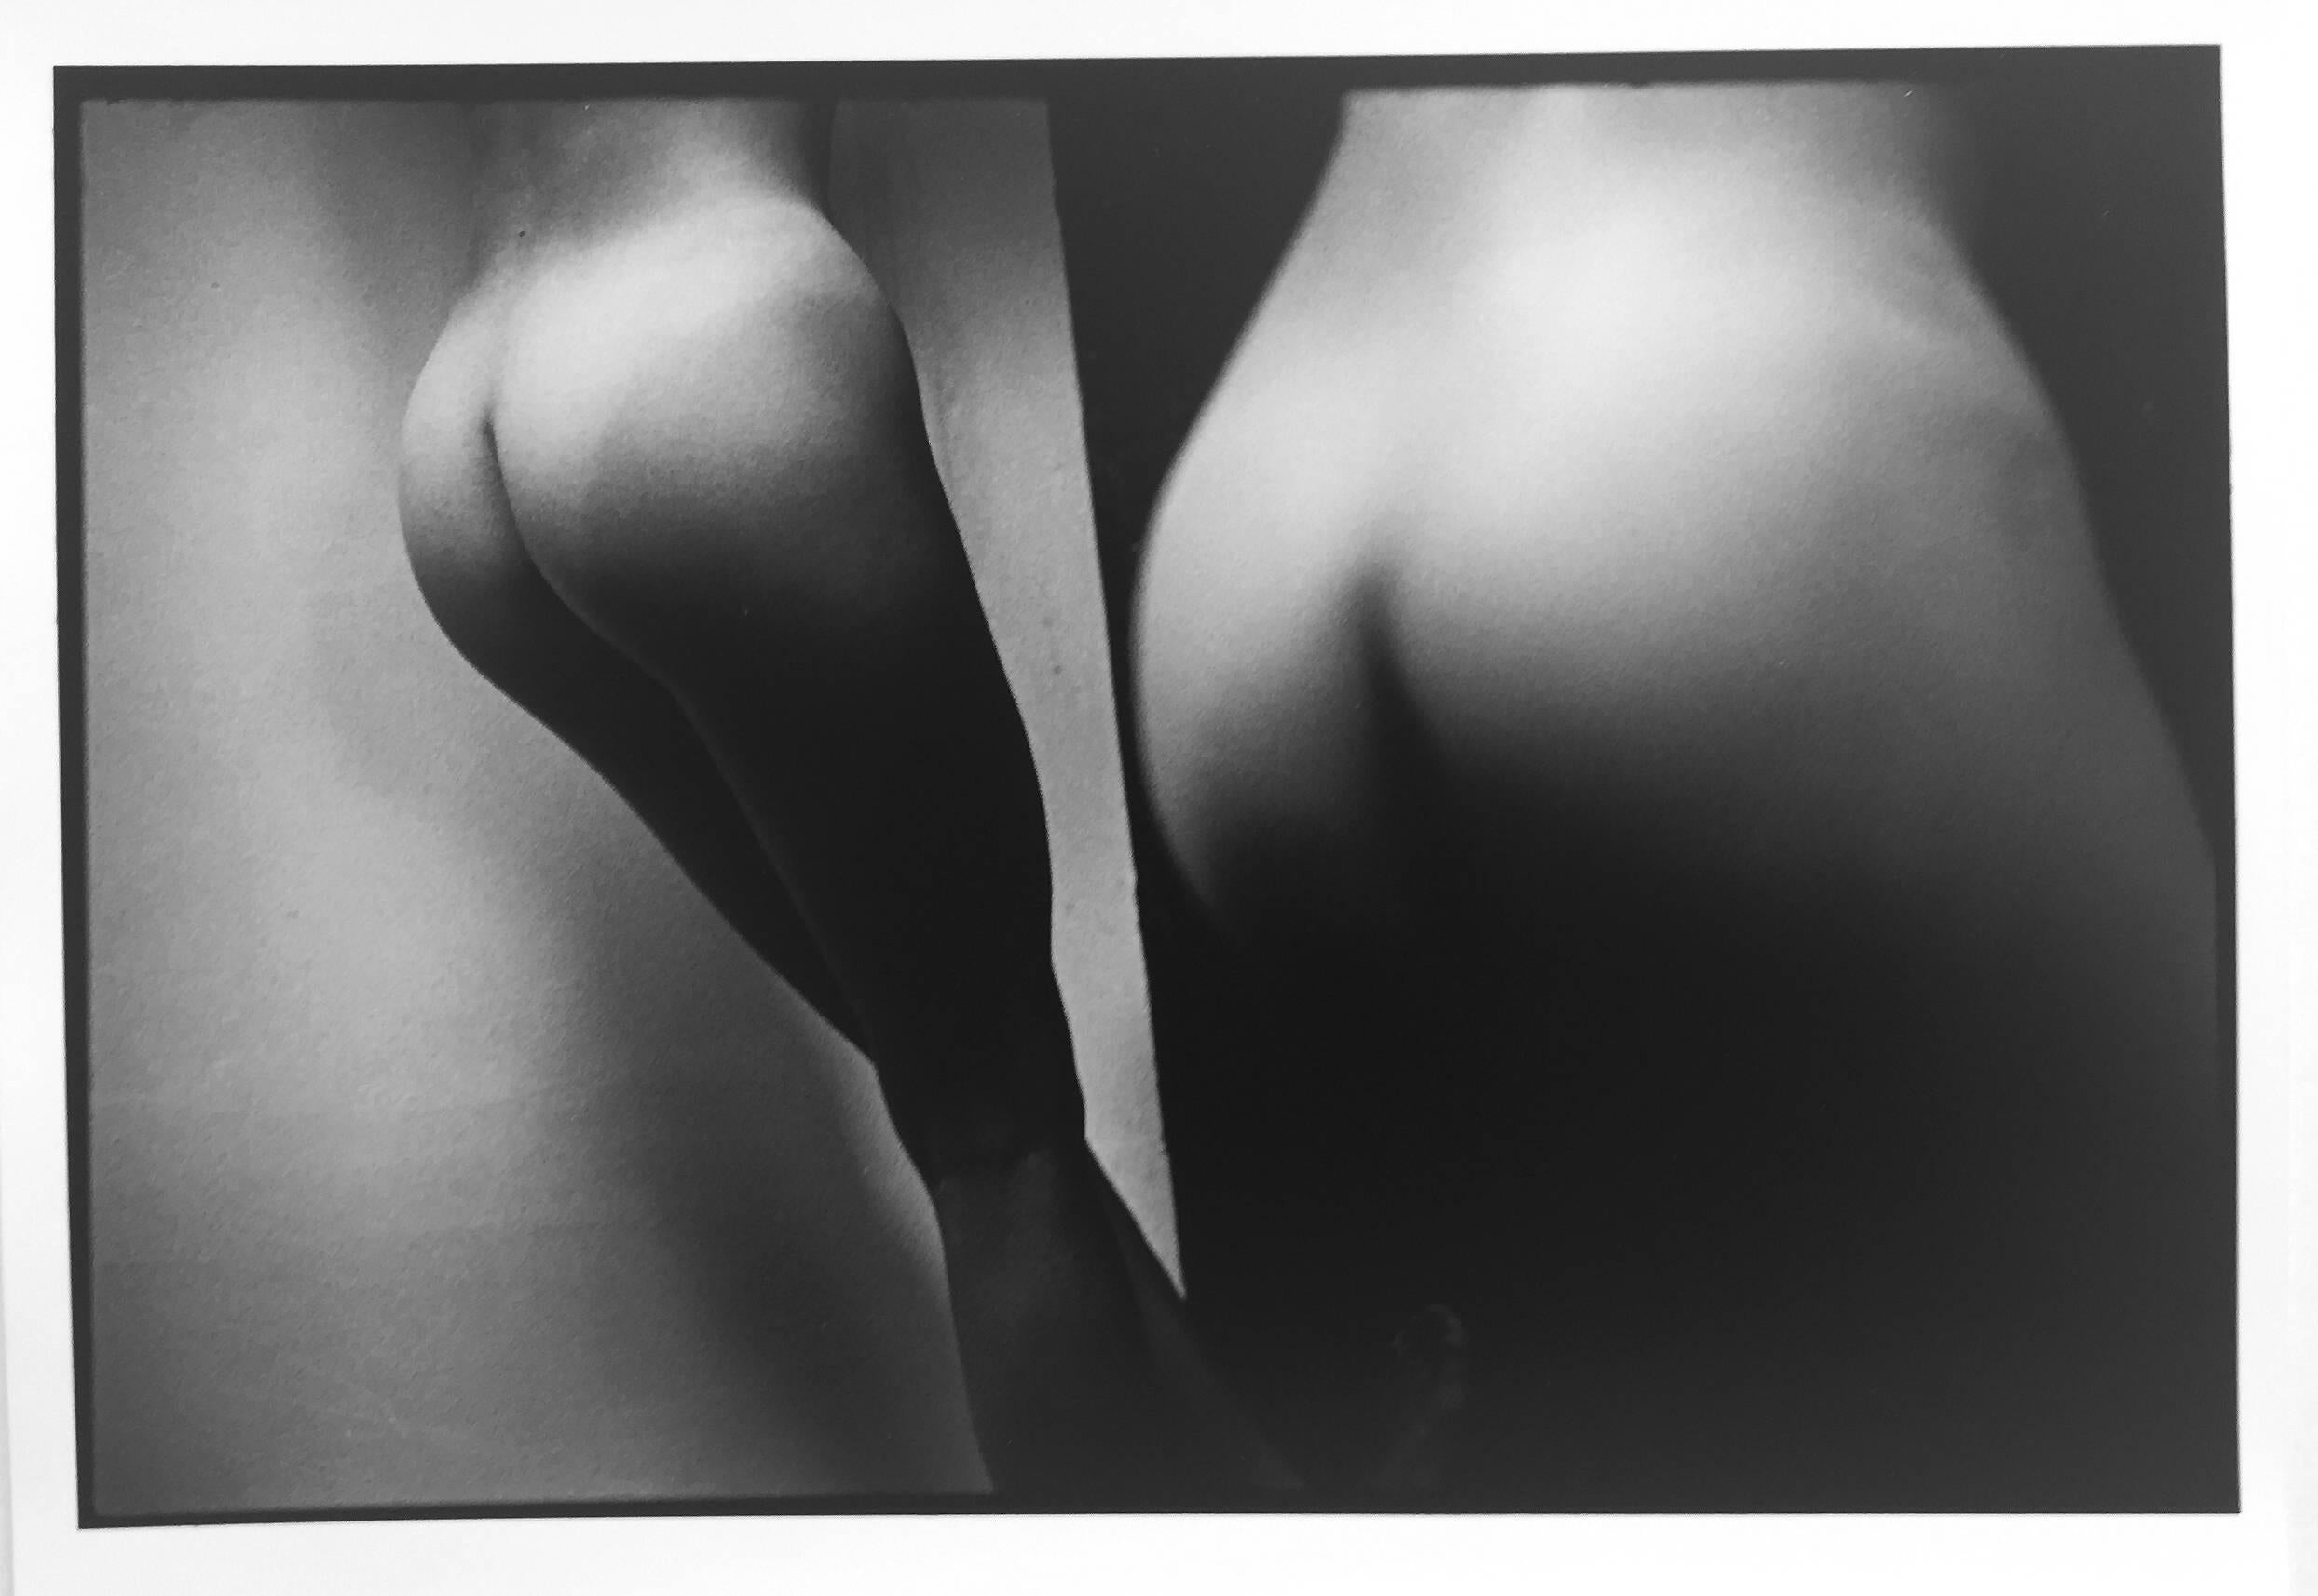 Kate #9, Vintage Black and White Photograph of Erotic Nude